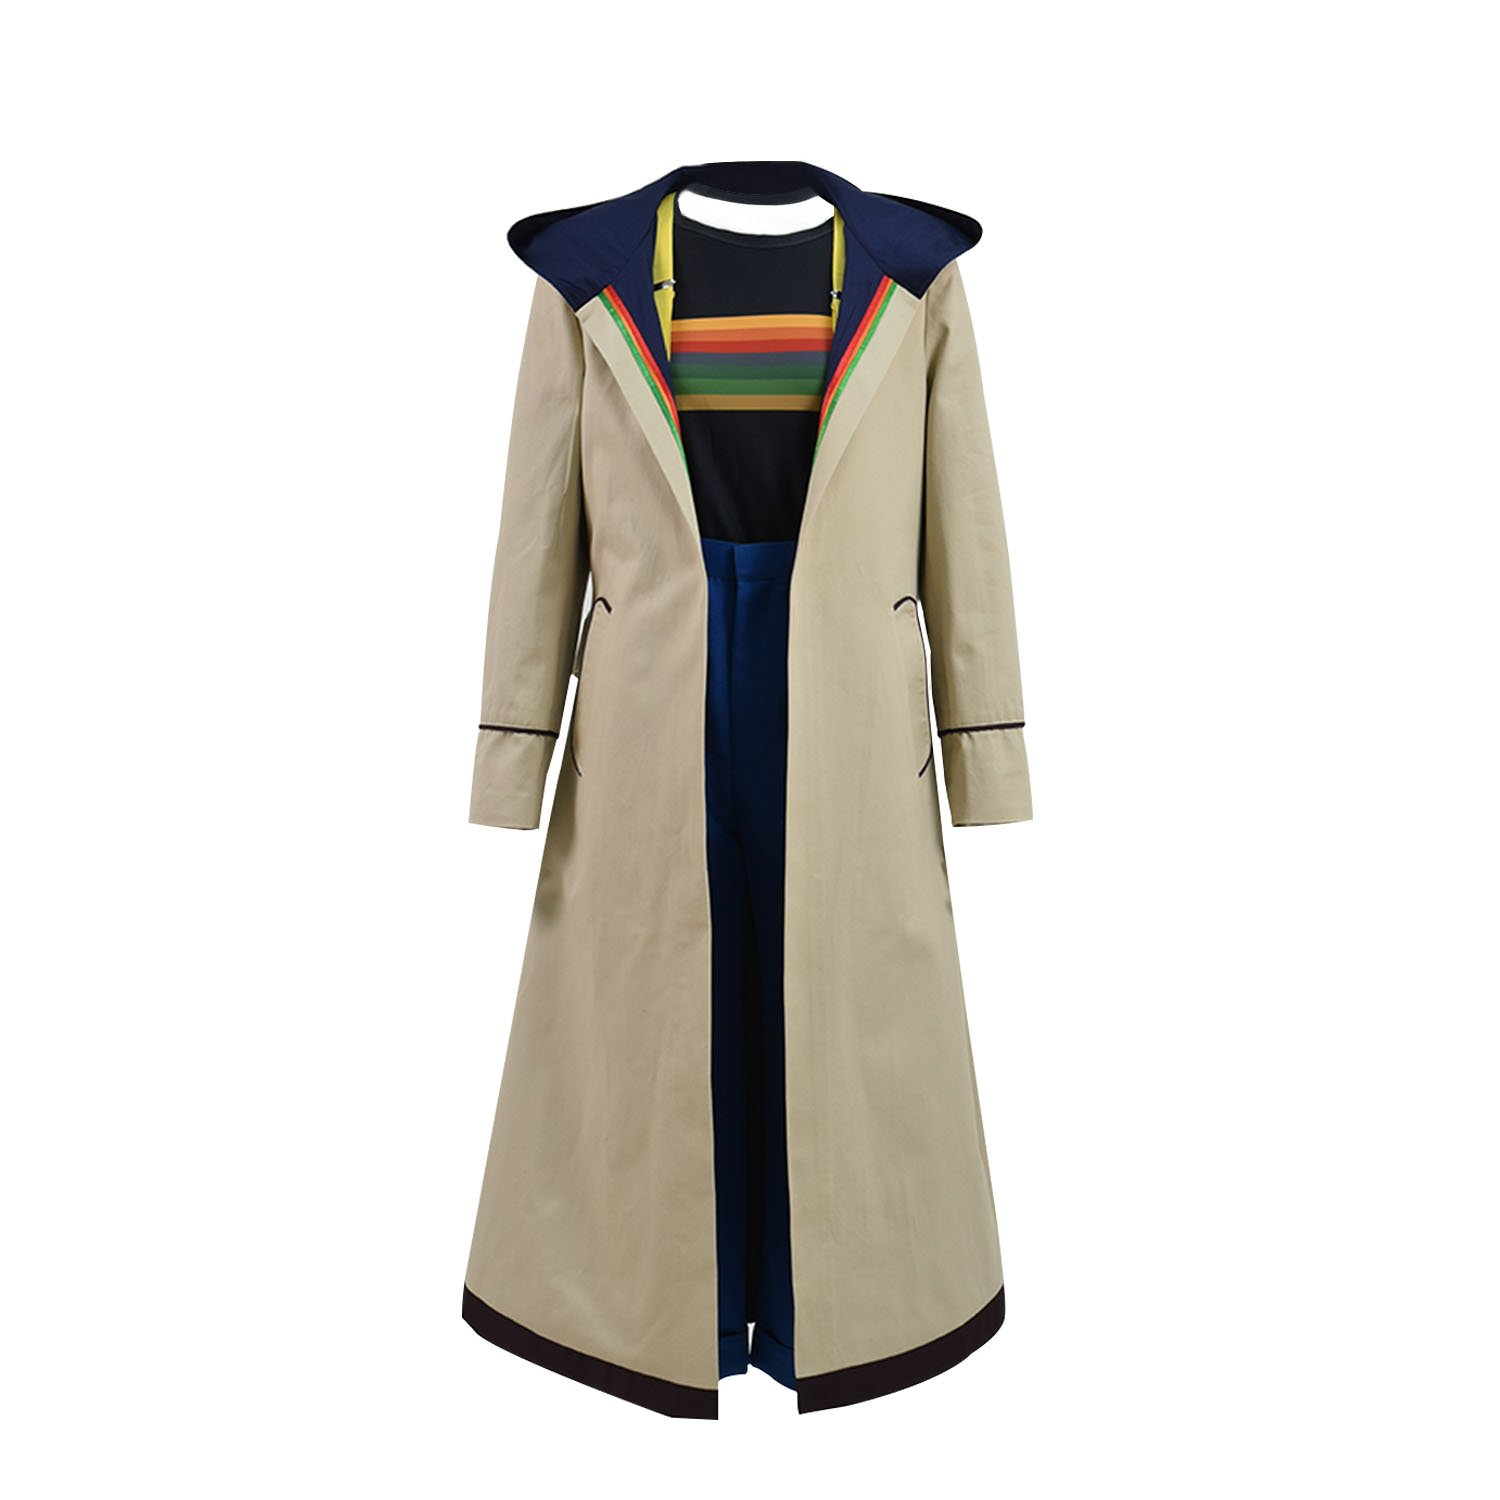 VOSTE Who Is Doctor thirteenth 13th Dr. Cosplay Costume Beige Coat For Women (Large, Full Set)